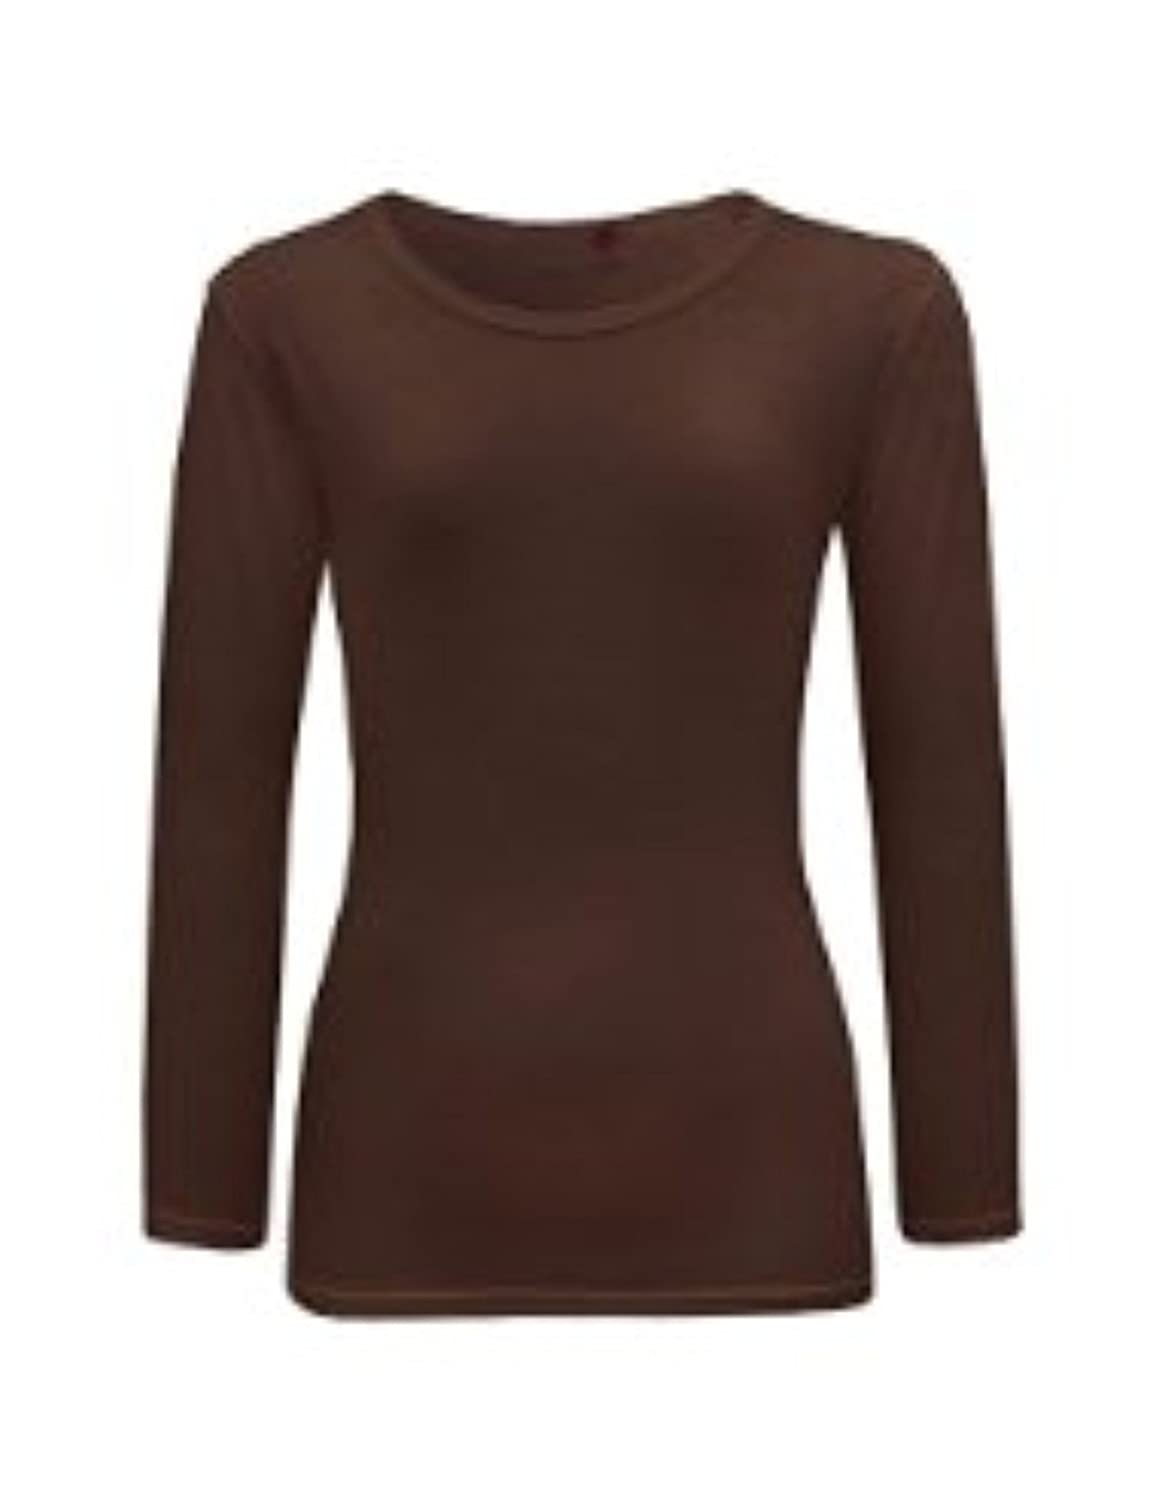 Girl Kids Long Sleeve Cotton Crew Neck Plain Brown Top/T-Shirt 7 8 ...